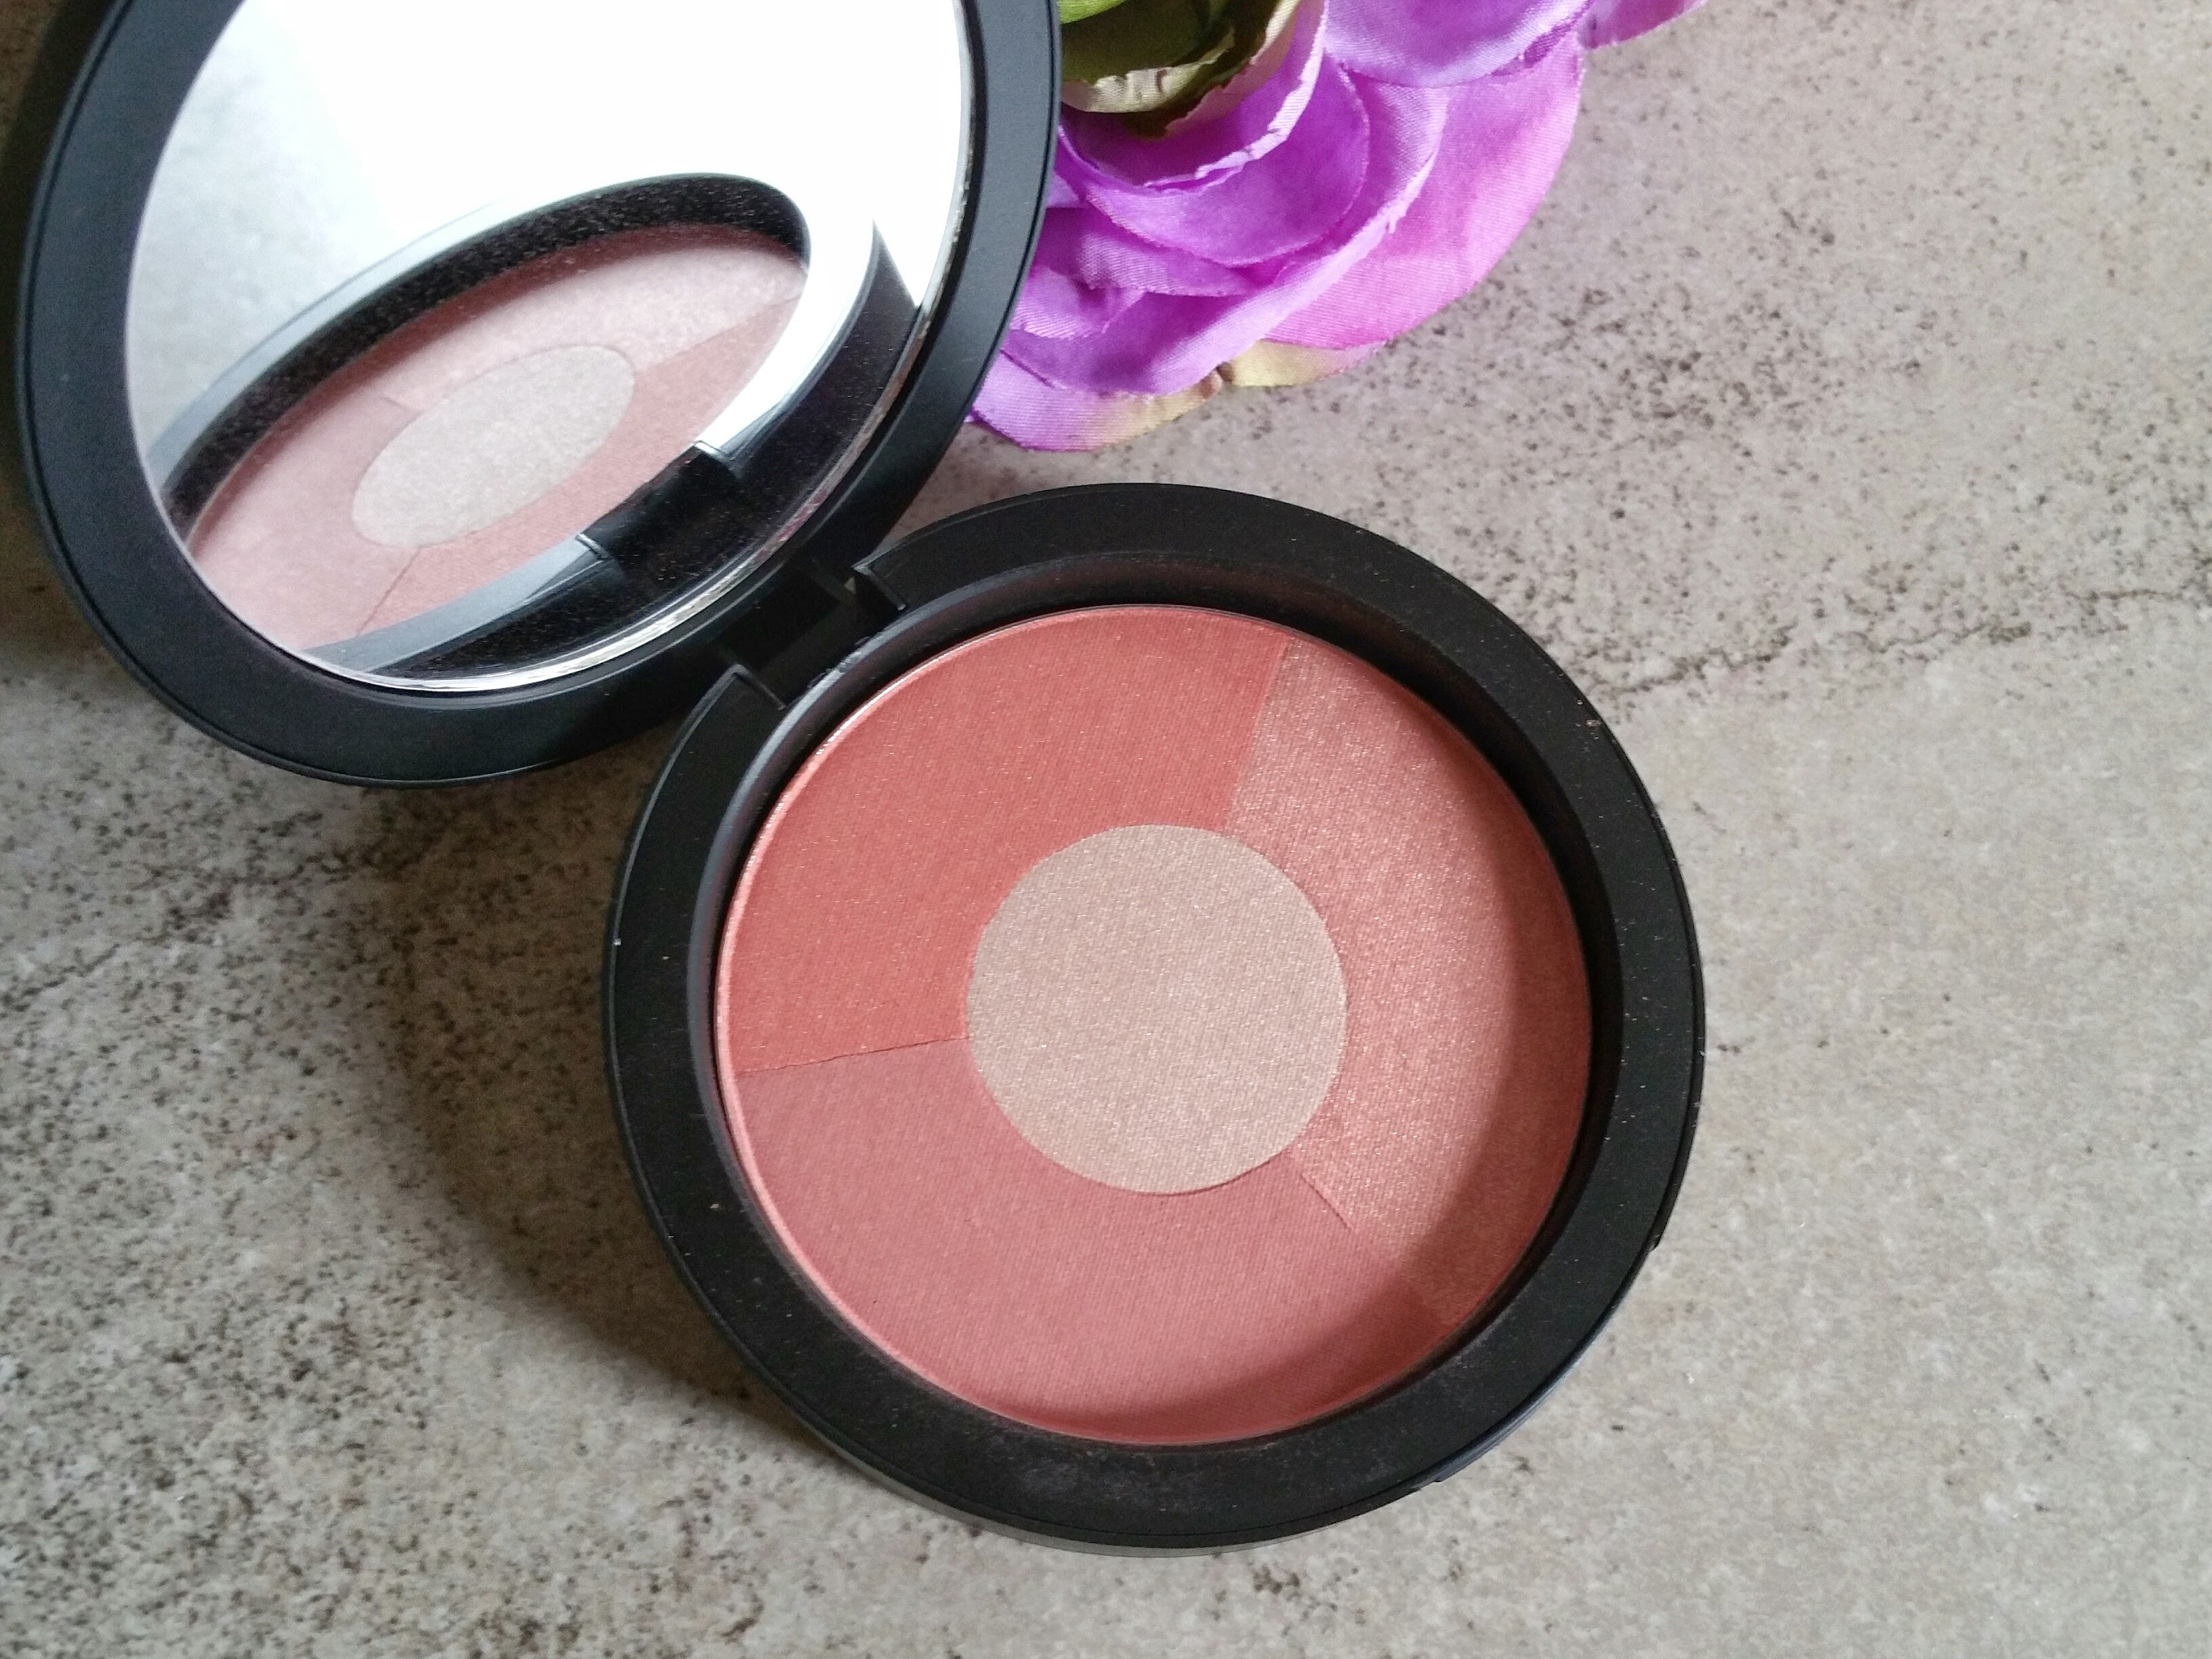 beauty, cosmetics, beauty product review, beauty review, makeup, Youngblood Cosmetics, swatches, eye shadow, lipstick, eyeliner, blush, shimmer brick, beautiful,